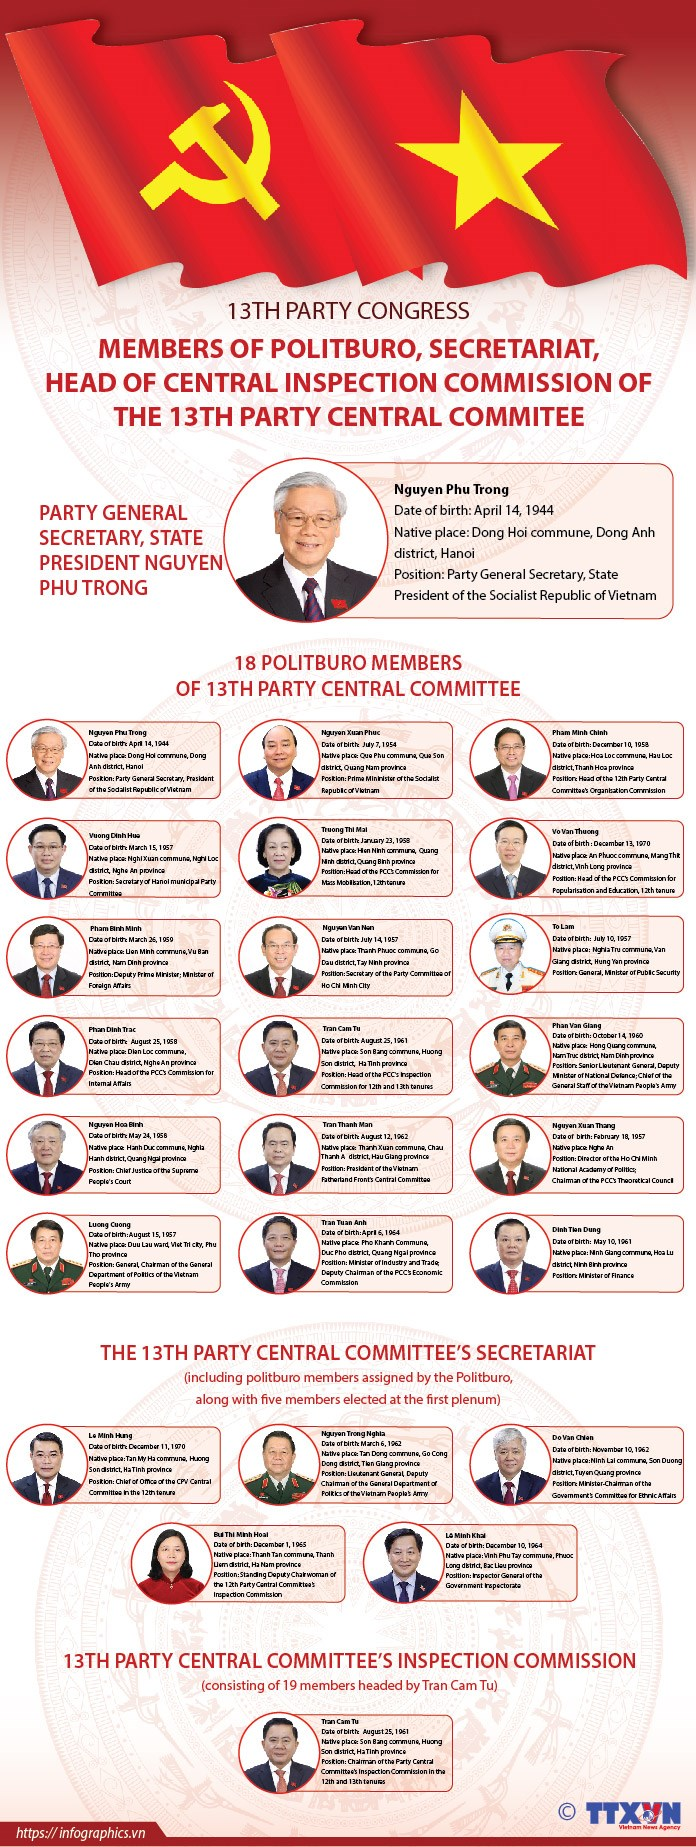 Members of Politburo, Secretariat, Head of Central Inspection Commission of 13th PCC hinh anh 1